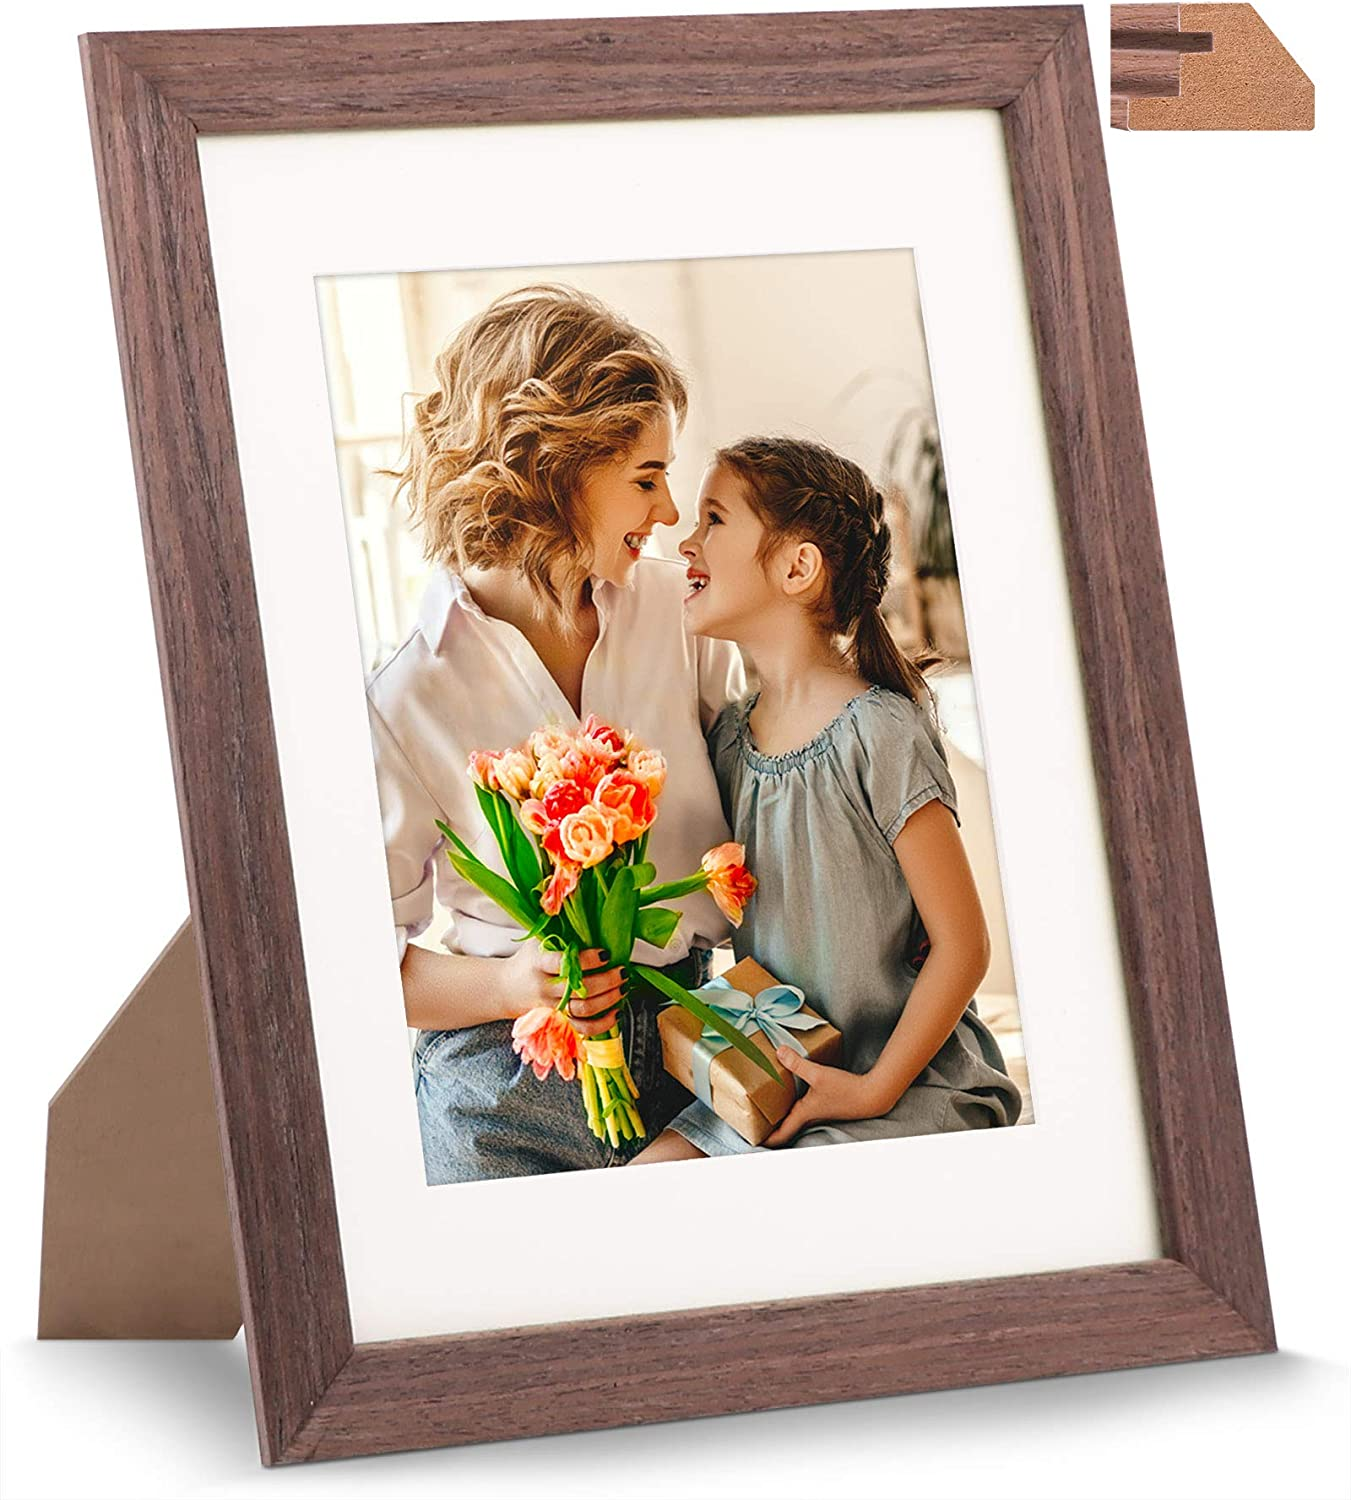 Jd Concept 8 5x11 Wood Picture Frame With Glass Front For 6x8 With Mat Or 8 5 X 11 Without Mat Perfect For Document Diploma Certificate Artwork Prints Or Photo